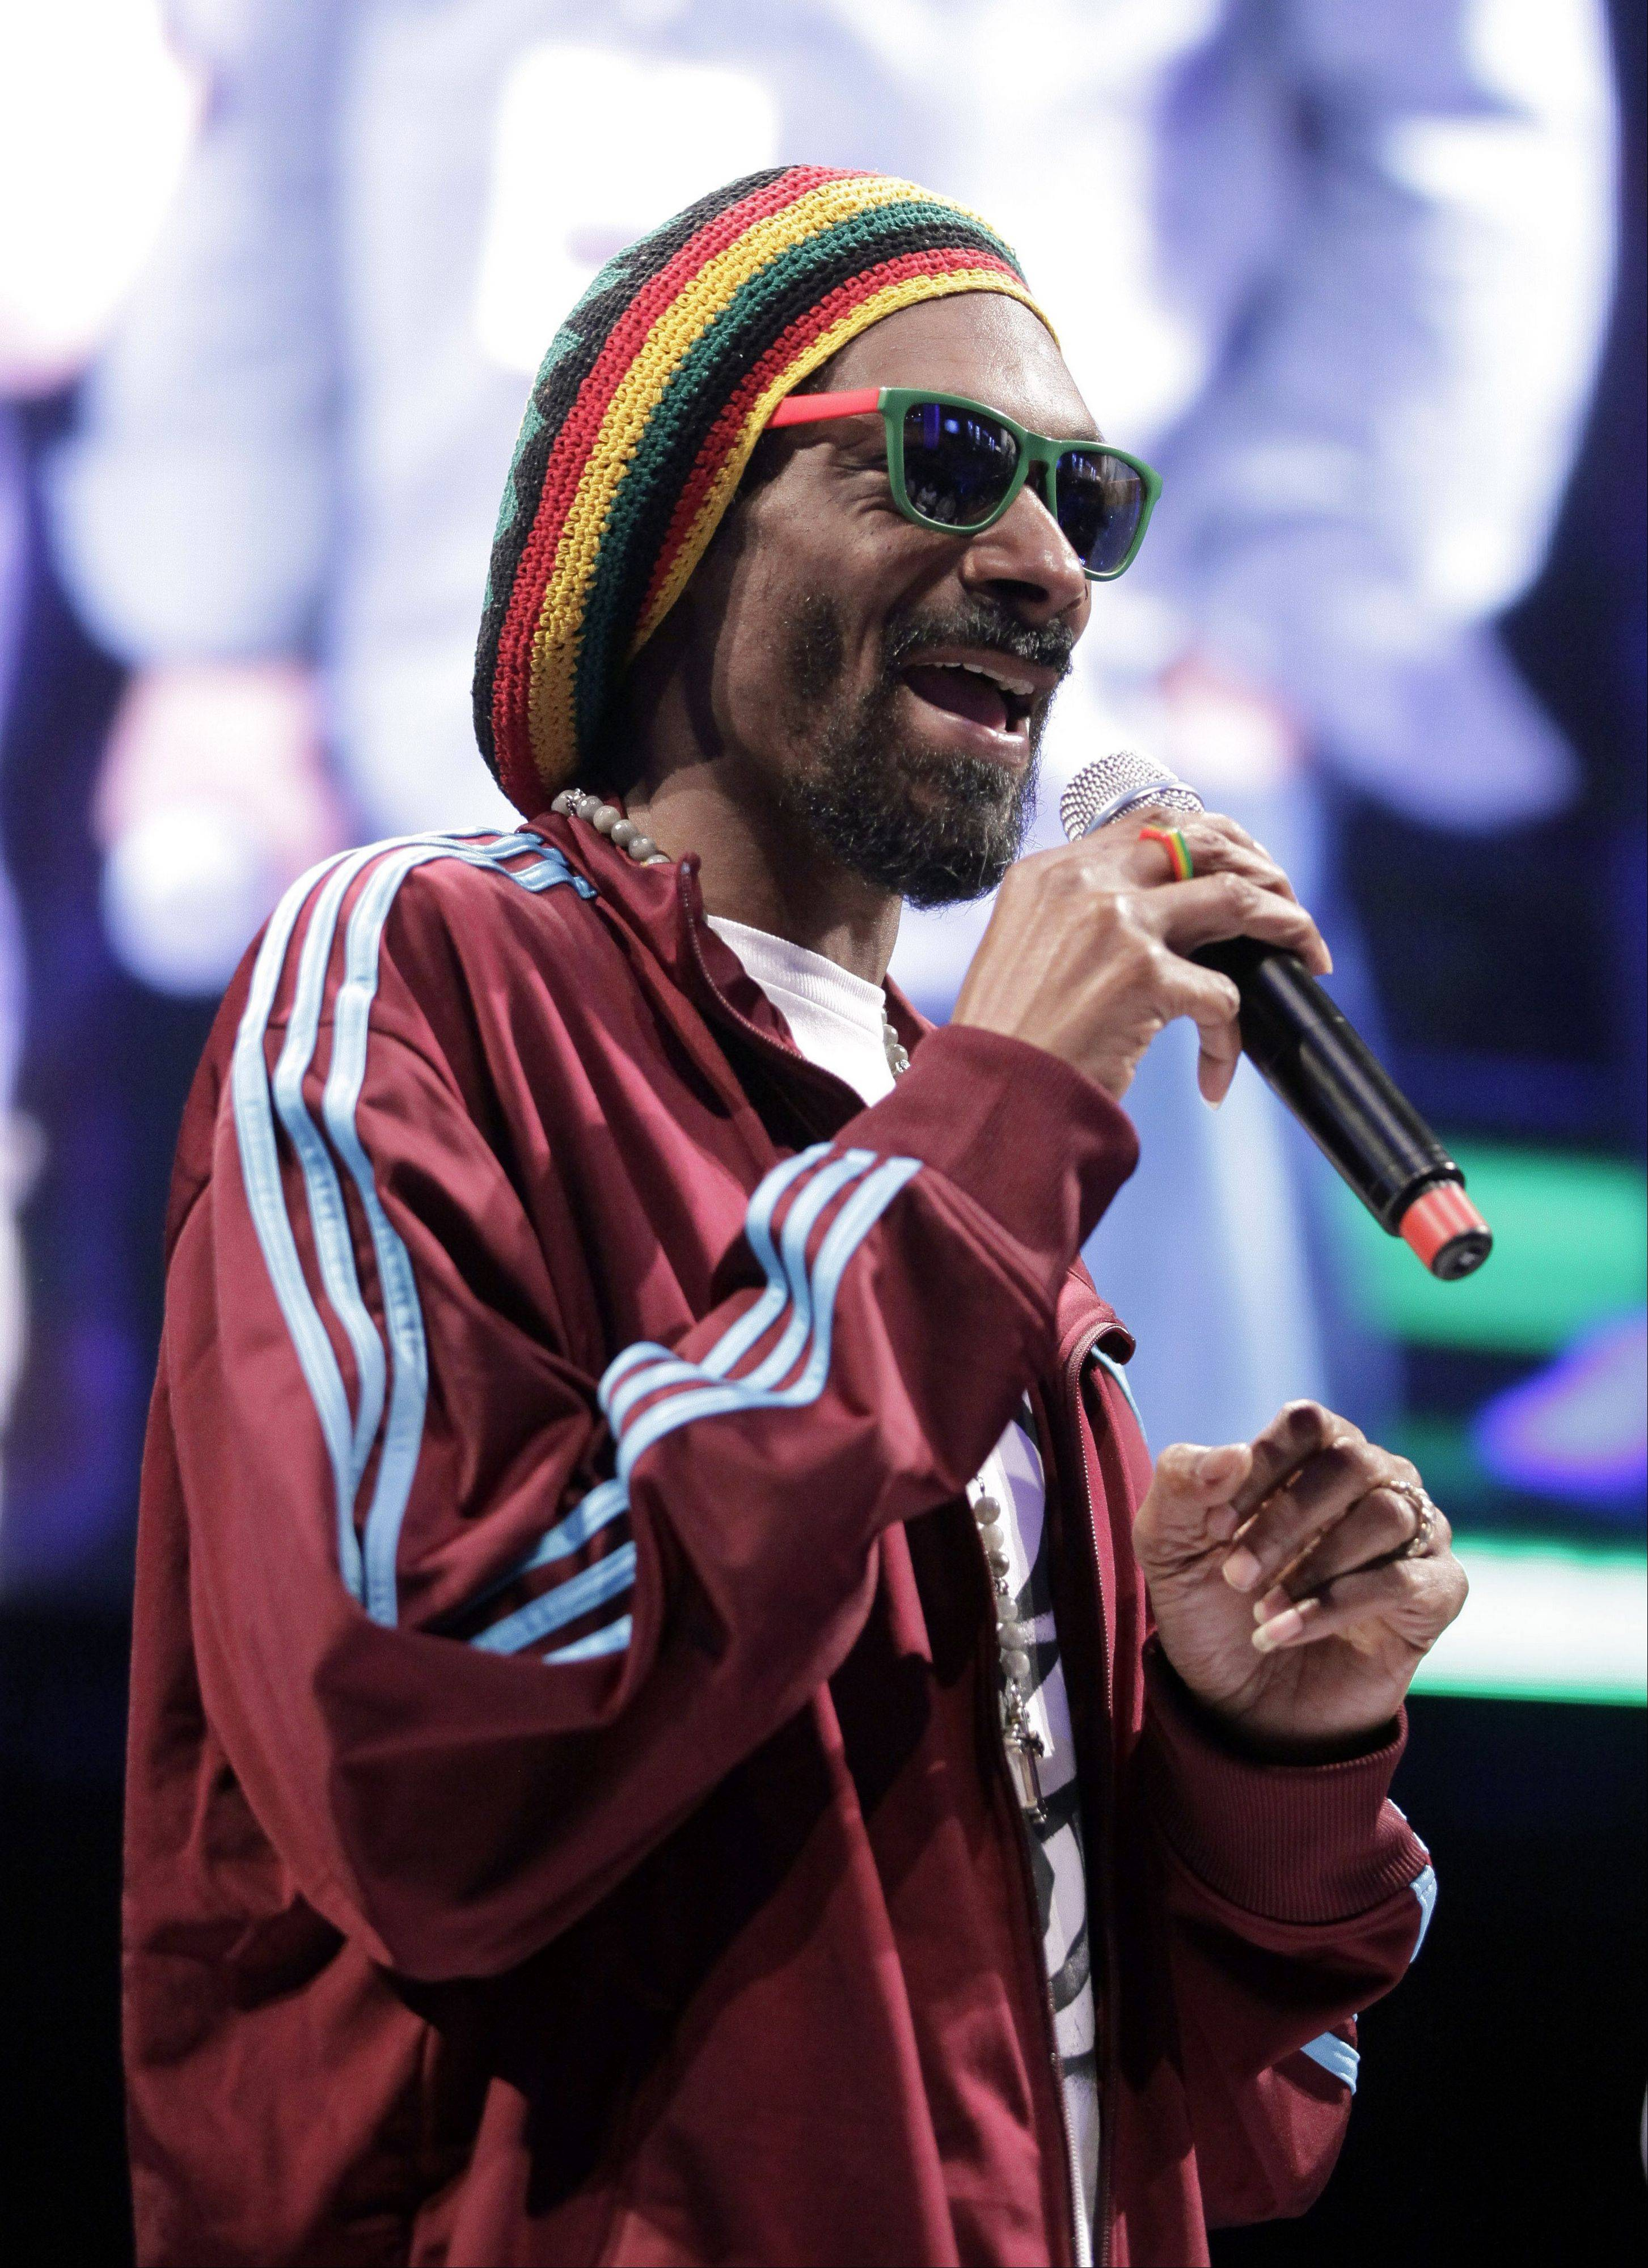 Rapper Snoop Dogg is changing his name to Snoop Lion.